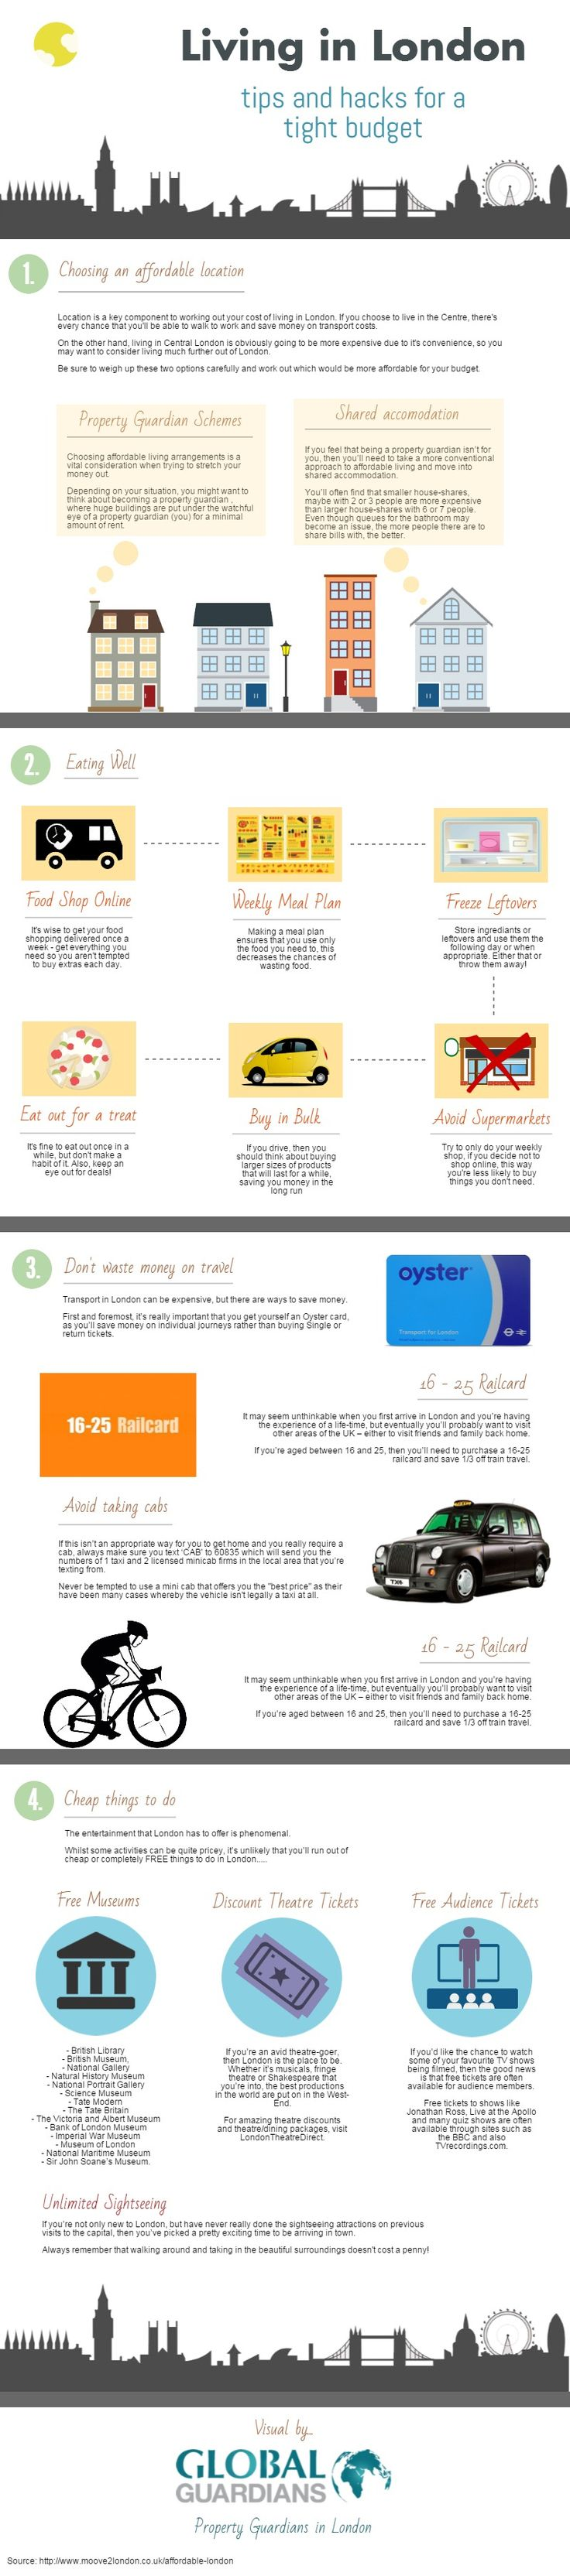 Living in London Tips and Hacks for a Tight Budget #infographic #Hacks #London #Finance